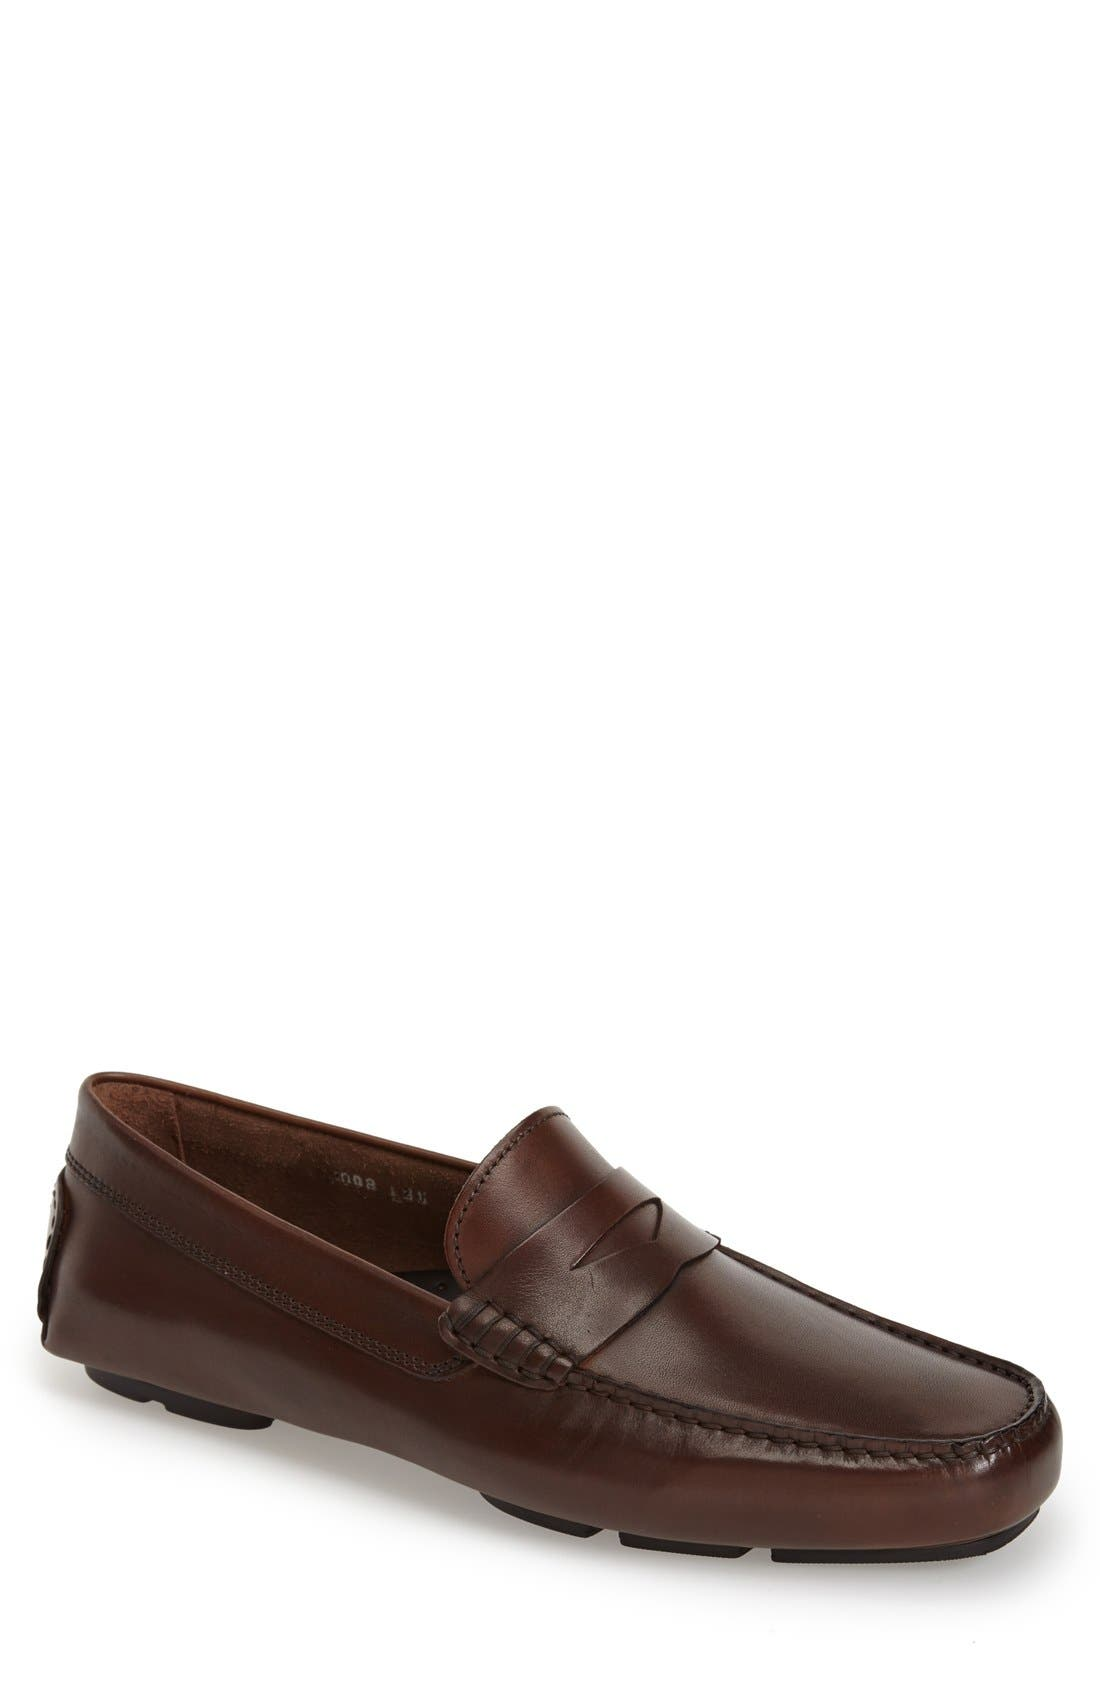 Main Image - To Boot New York 'Harper' Driving Shoe (Men)